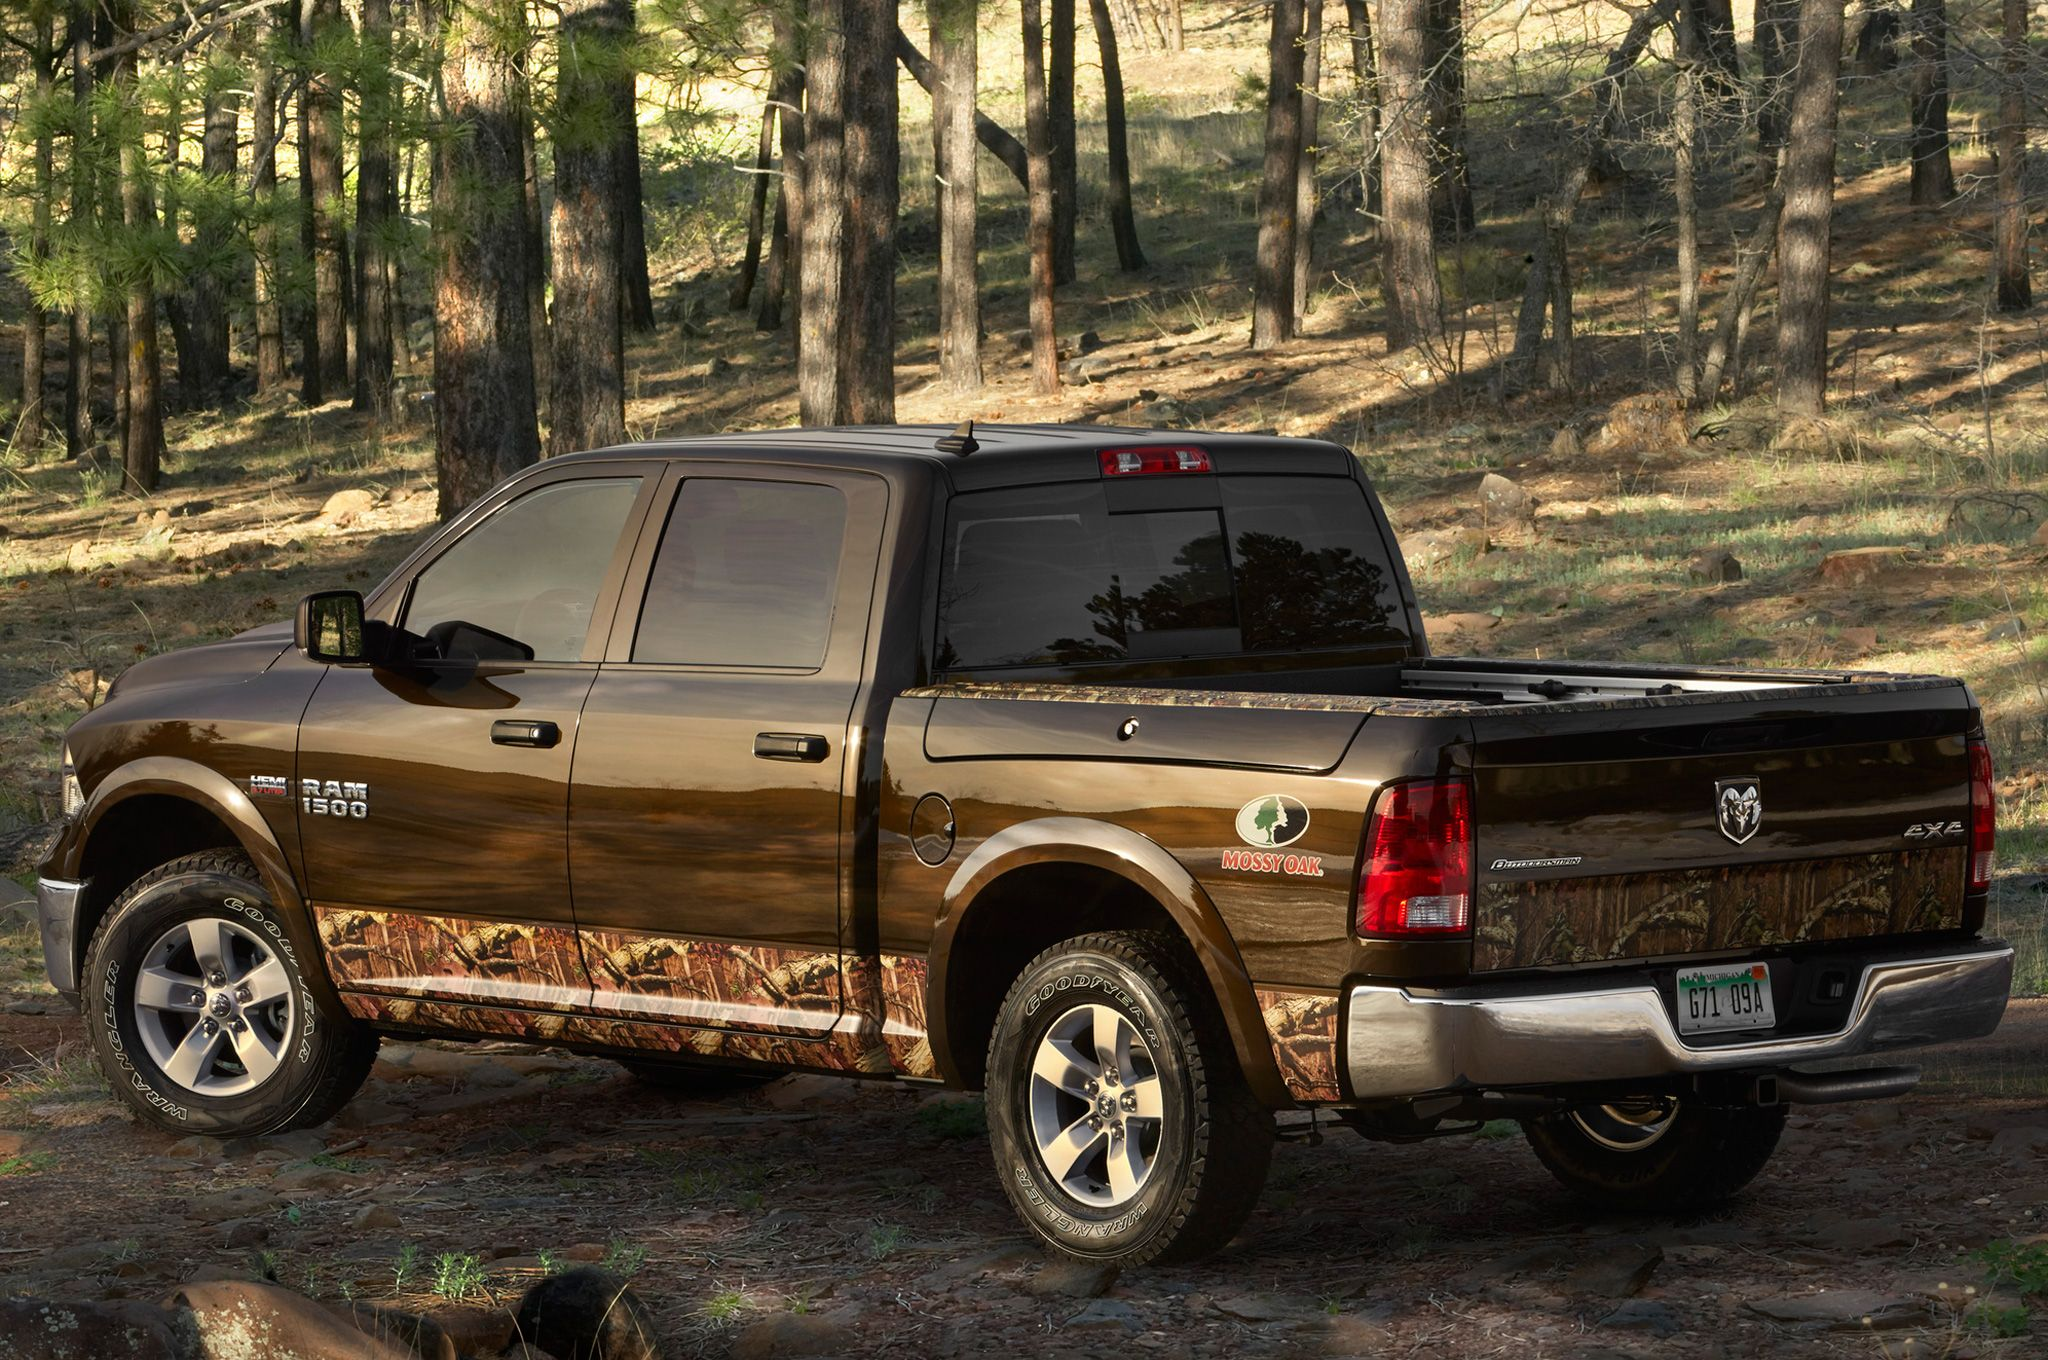 2014 ram 1500 mossy oak edition returns to ram lineup